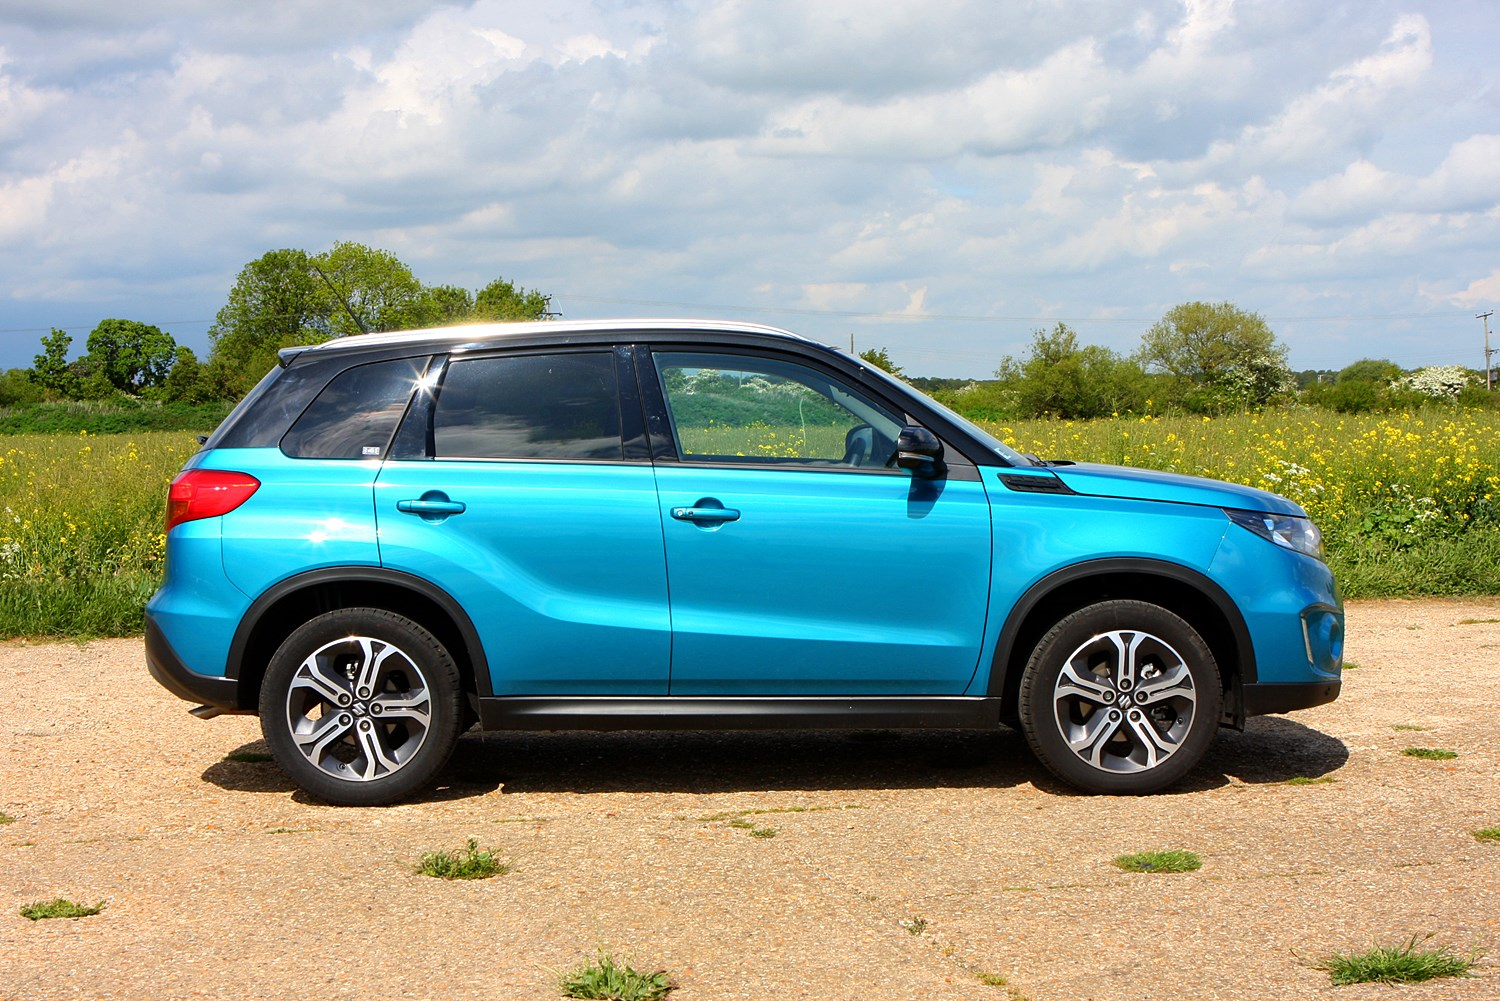 Insure Com Review >> Suzuki Vitara 4x4 Review (2015 - ) | Parkers